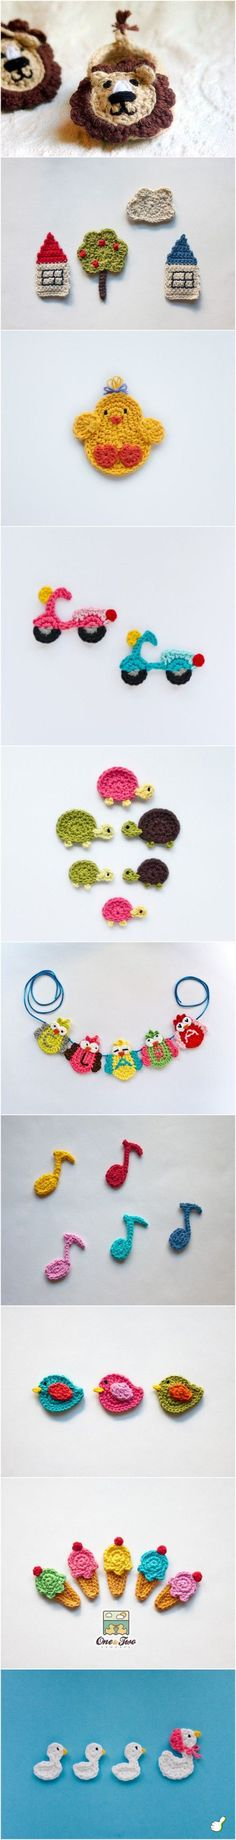 These are crochet jewelry, but I think they would make cute refrigerator magnets as well!!